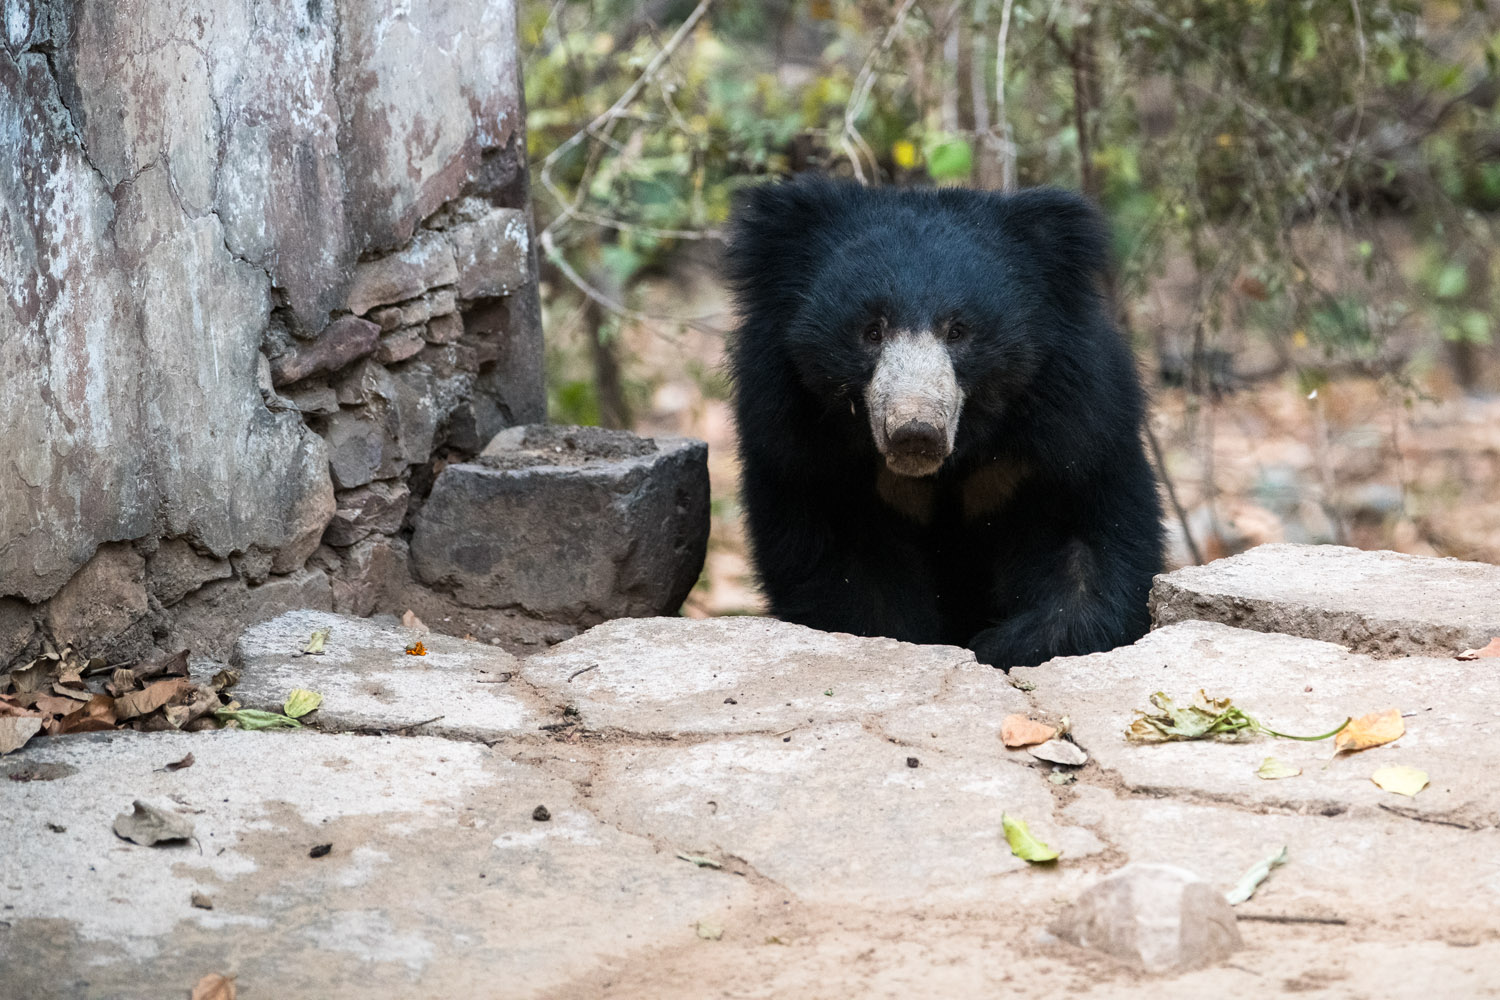 Sloth bear at edge of temple, Ranthambhore National Park, Rajasthan, India